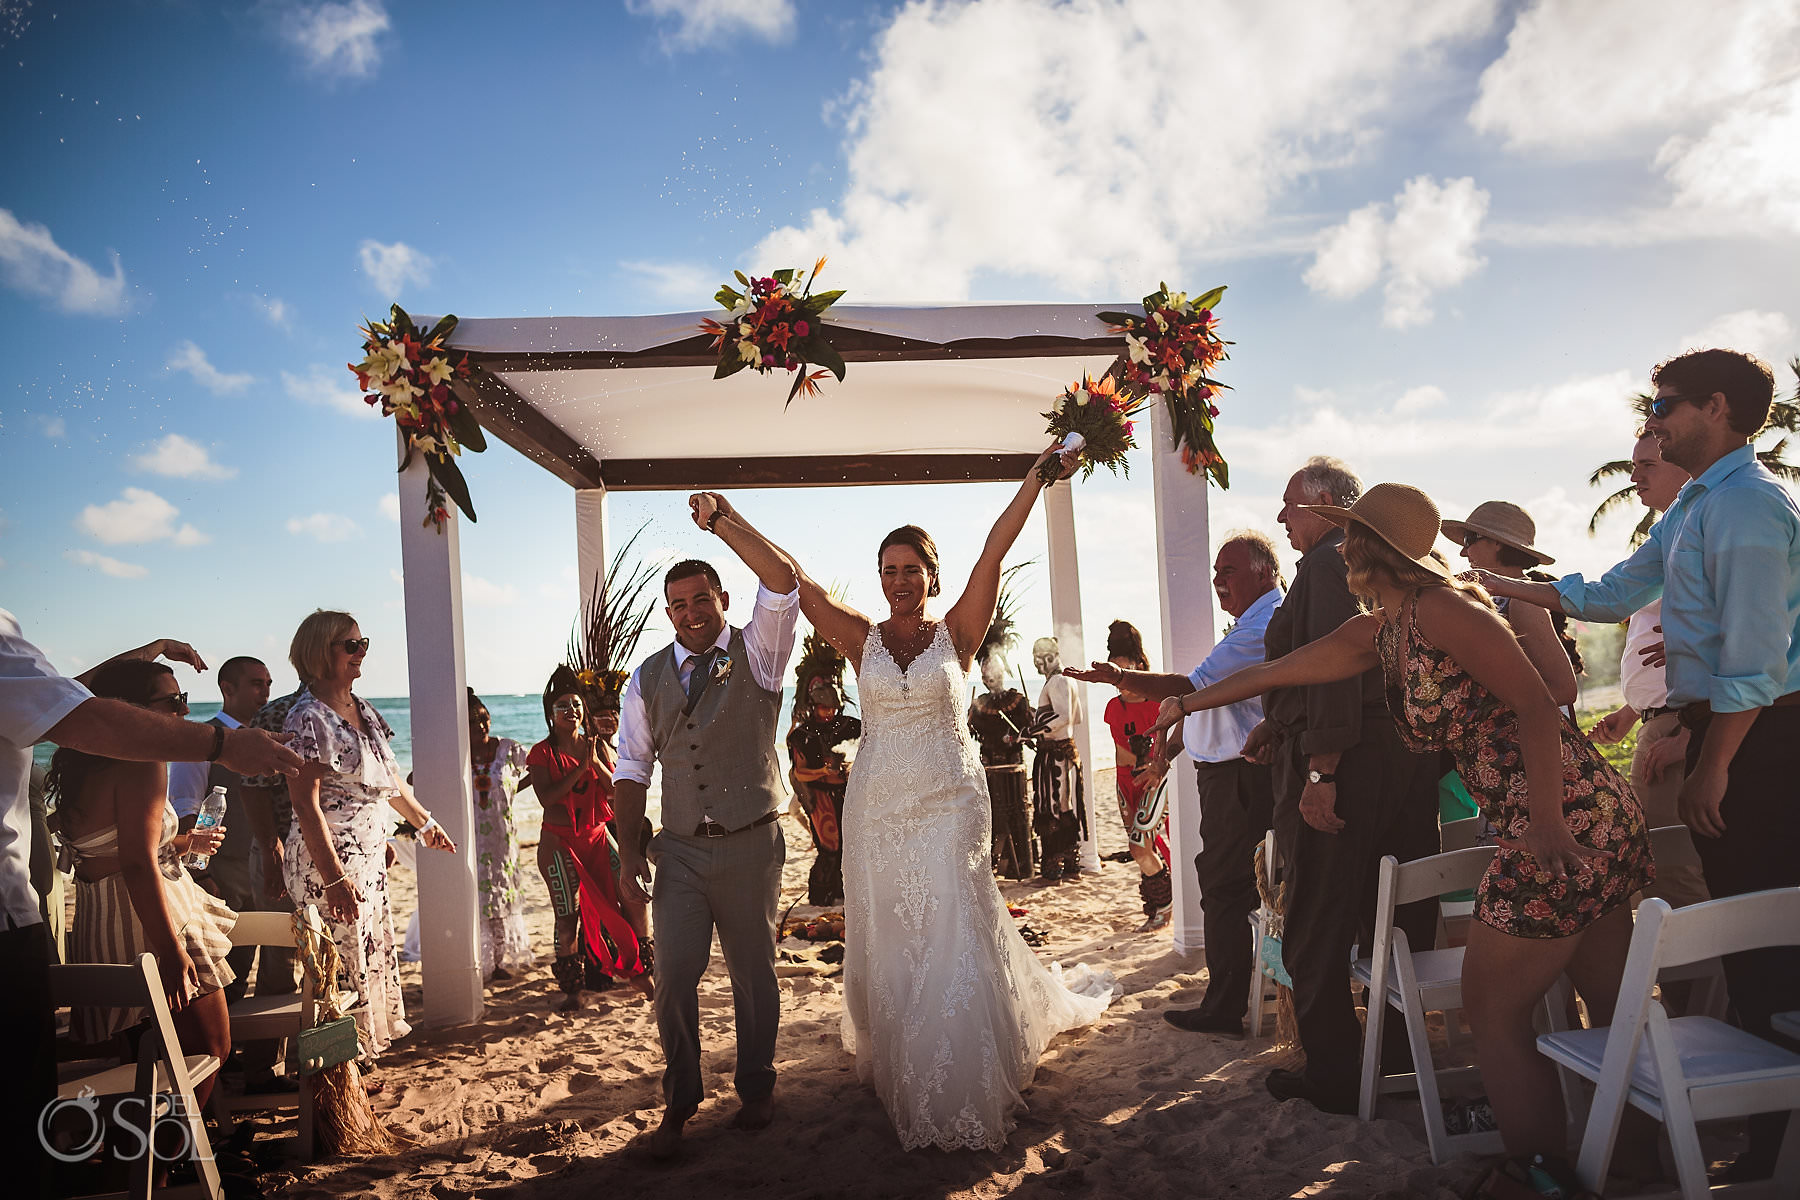 Dreams Tulum Mayan Wedding Newlyweds Celebration